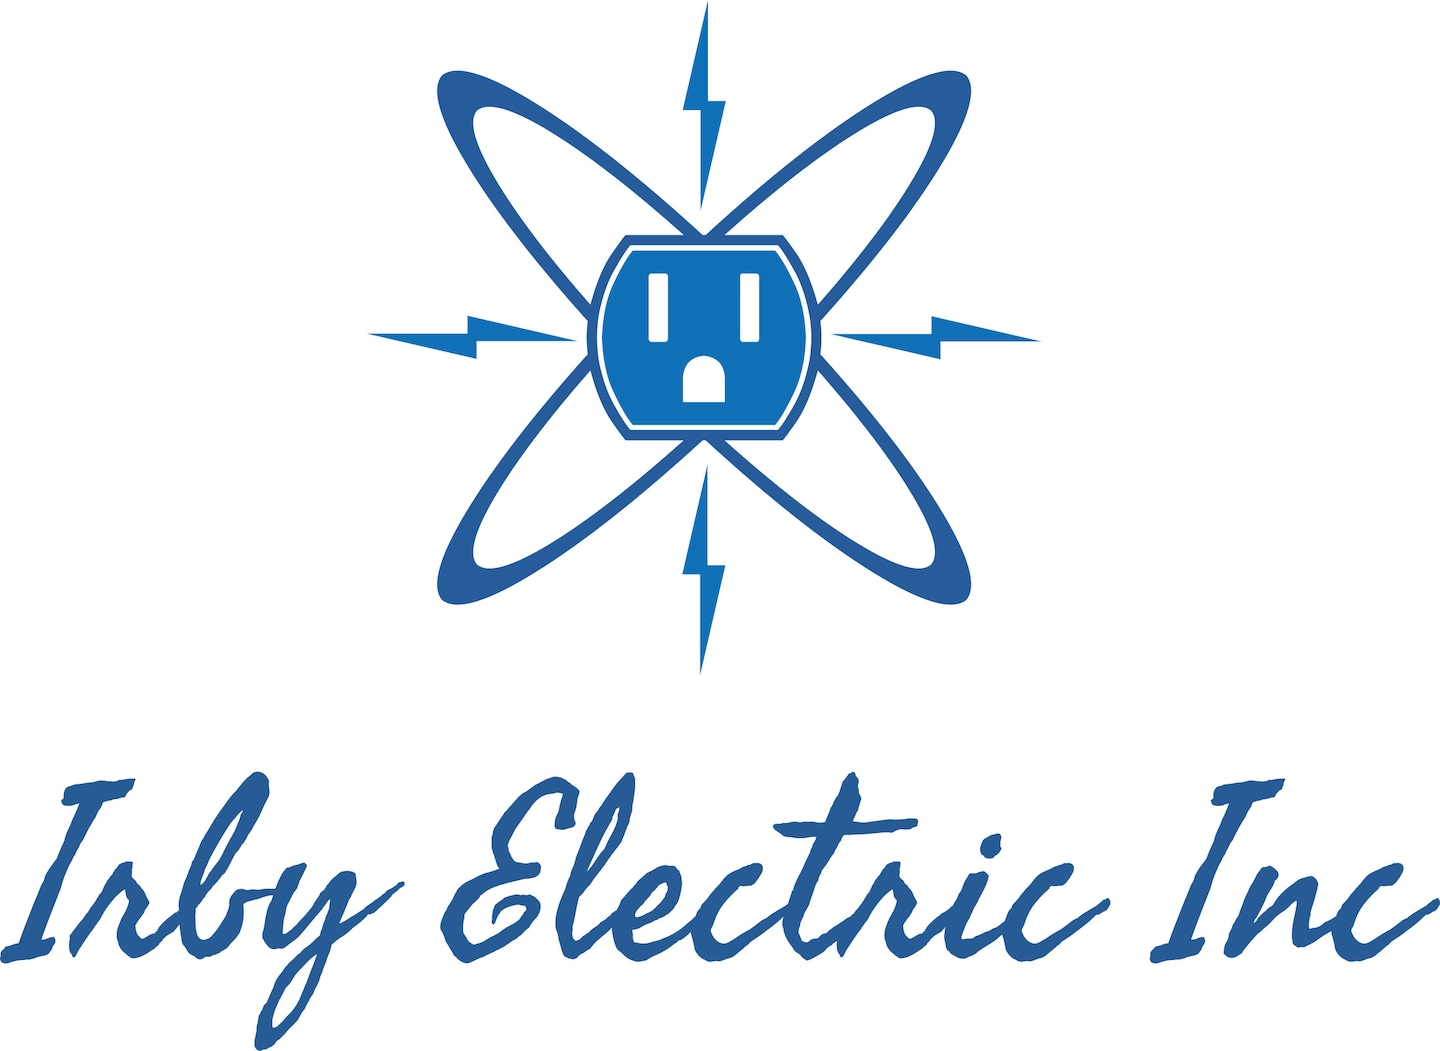 Irby Electric Inc.